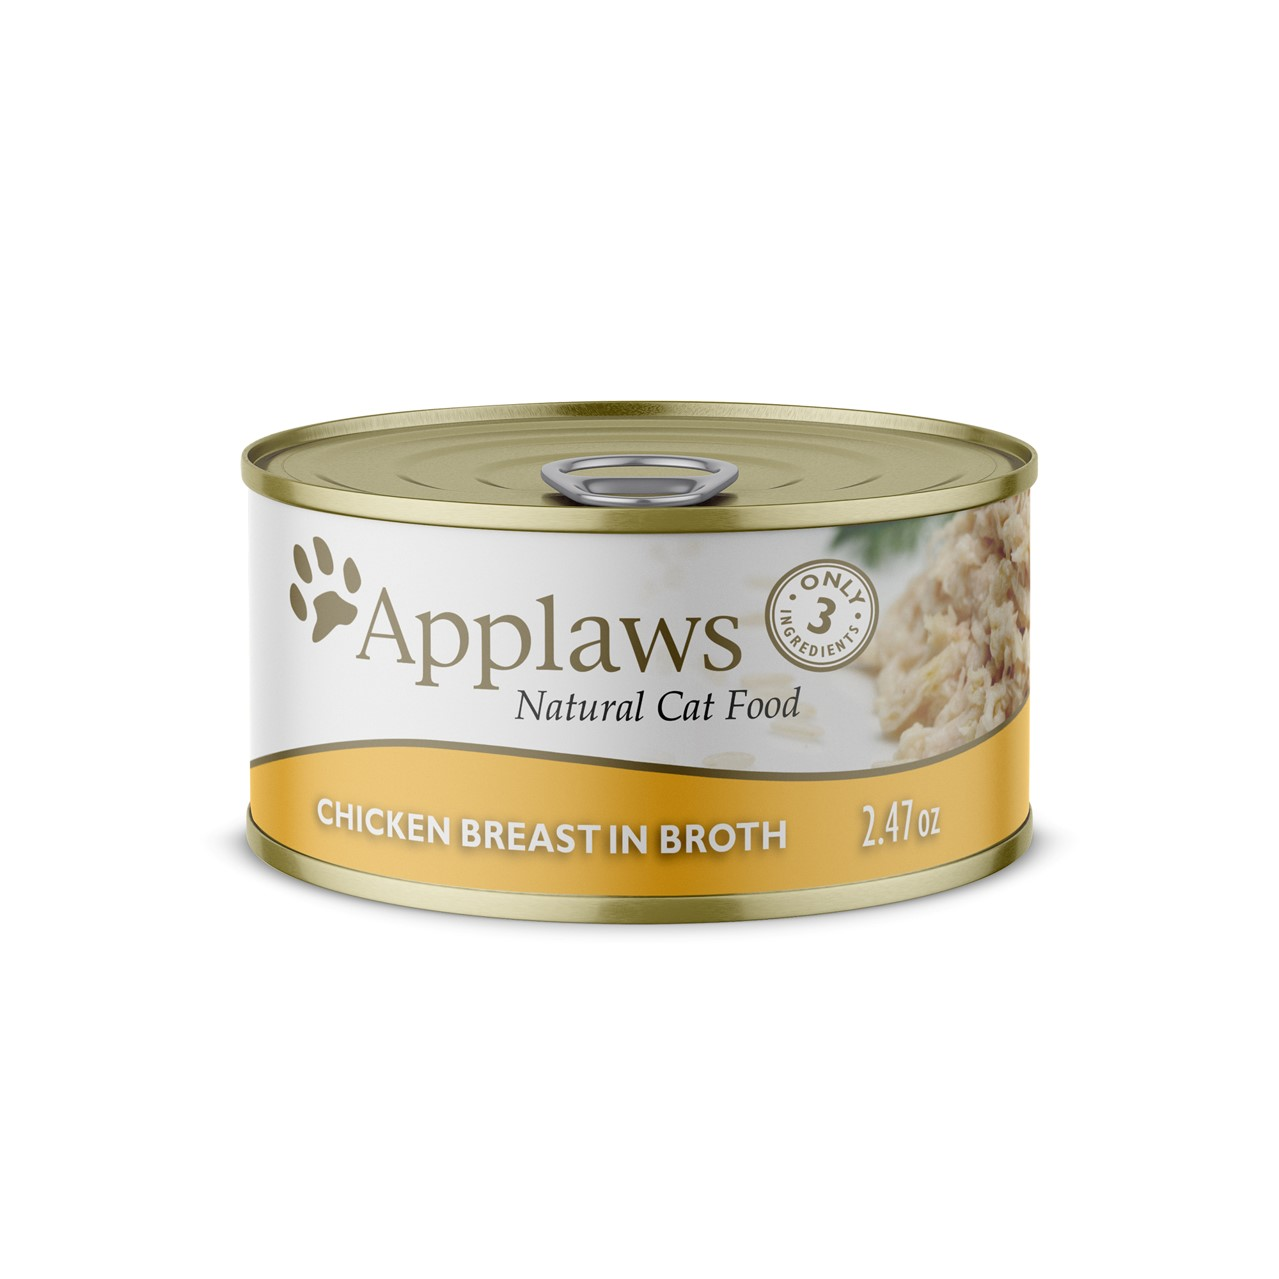 Applaws Natural Wet Cat Food Chicken Breast in Broth 2.47oz Can